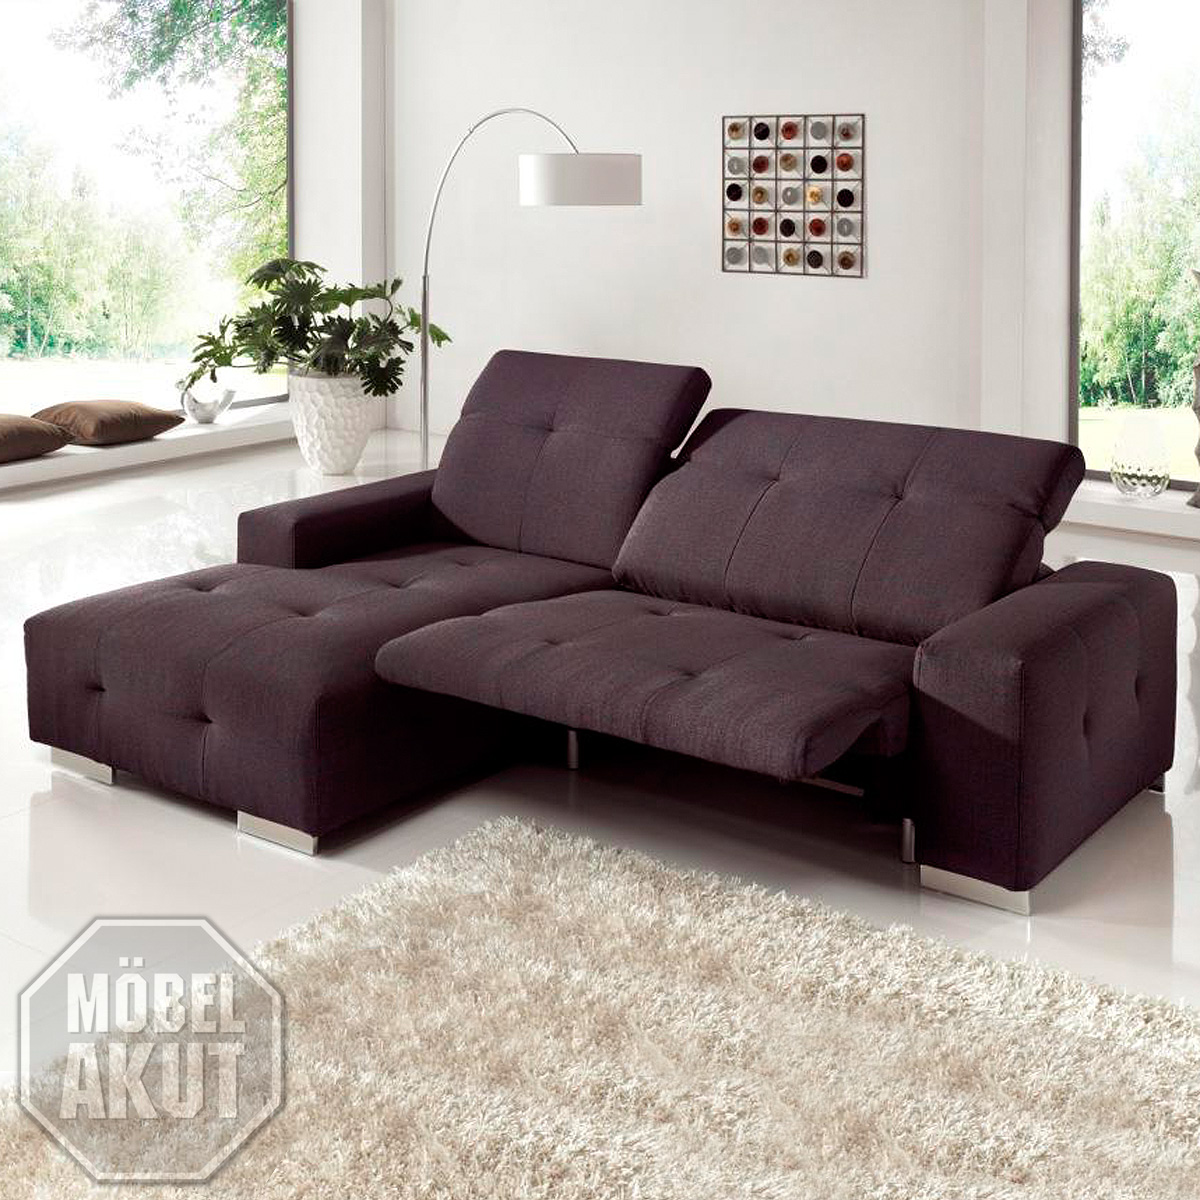 sofa mit relaxfunktion sofa elektrisch ausfahrbar sofa mit tea table lakos 2 sitzer kinosofa. Black Bedroom Furniture Sets. Home Design Ideas